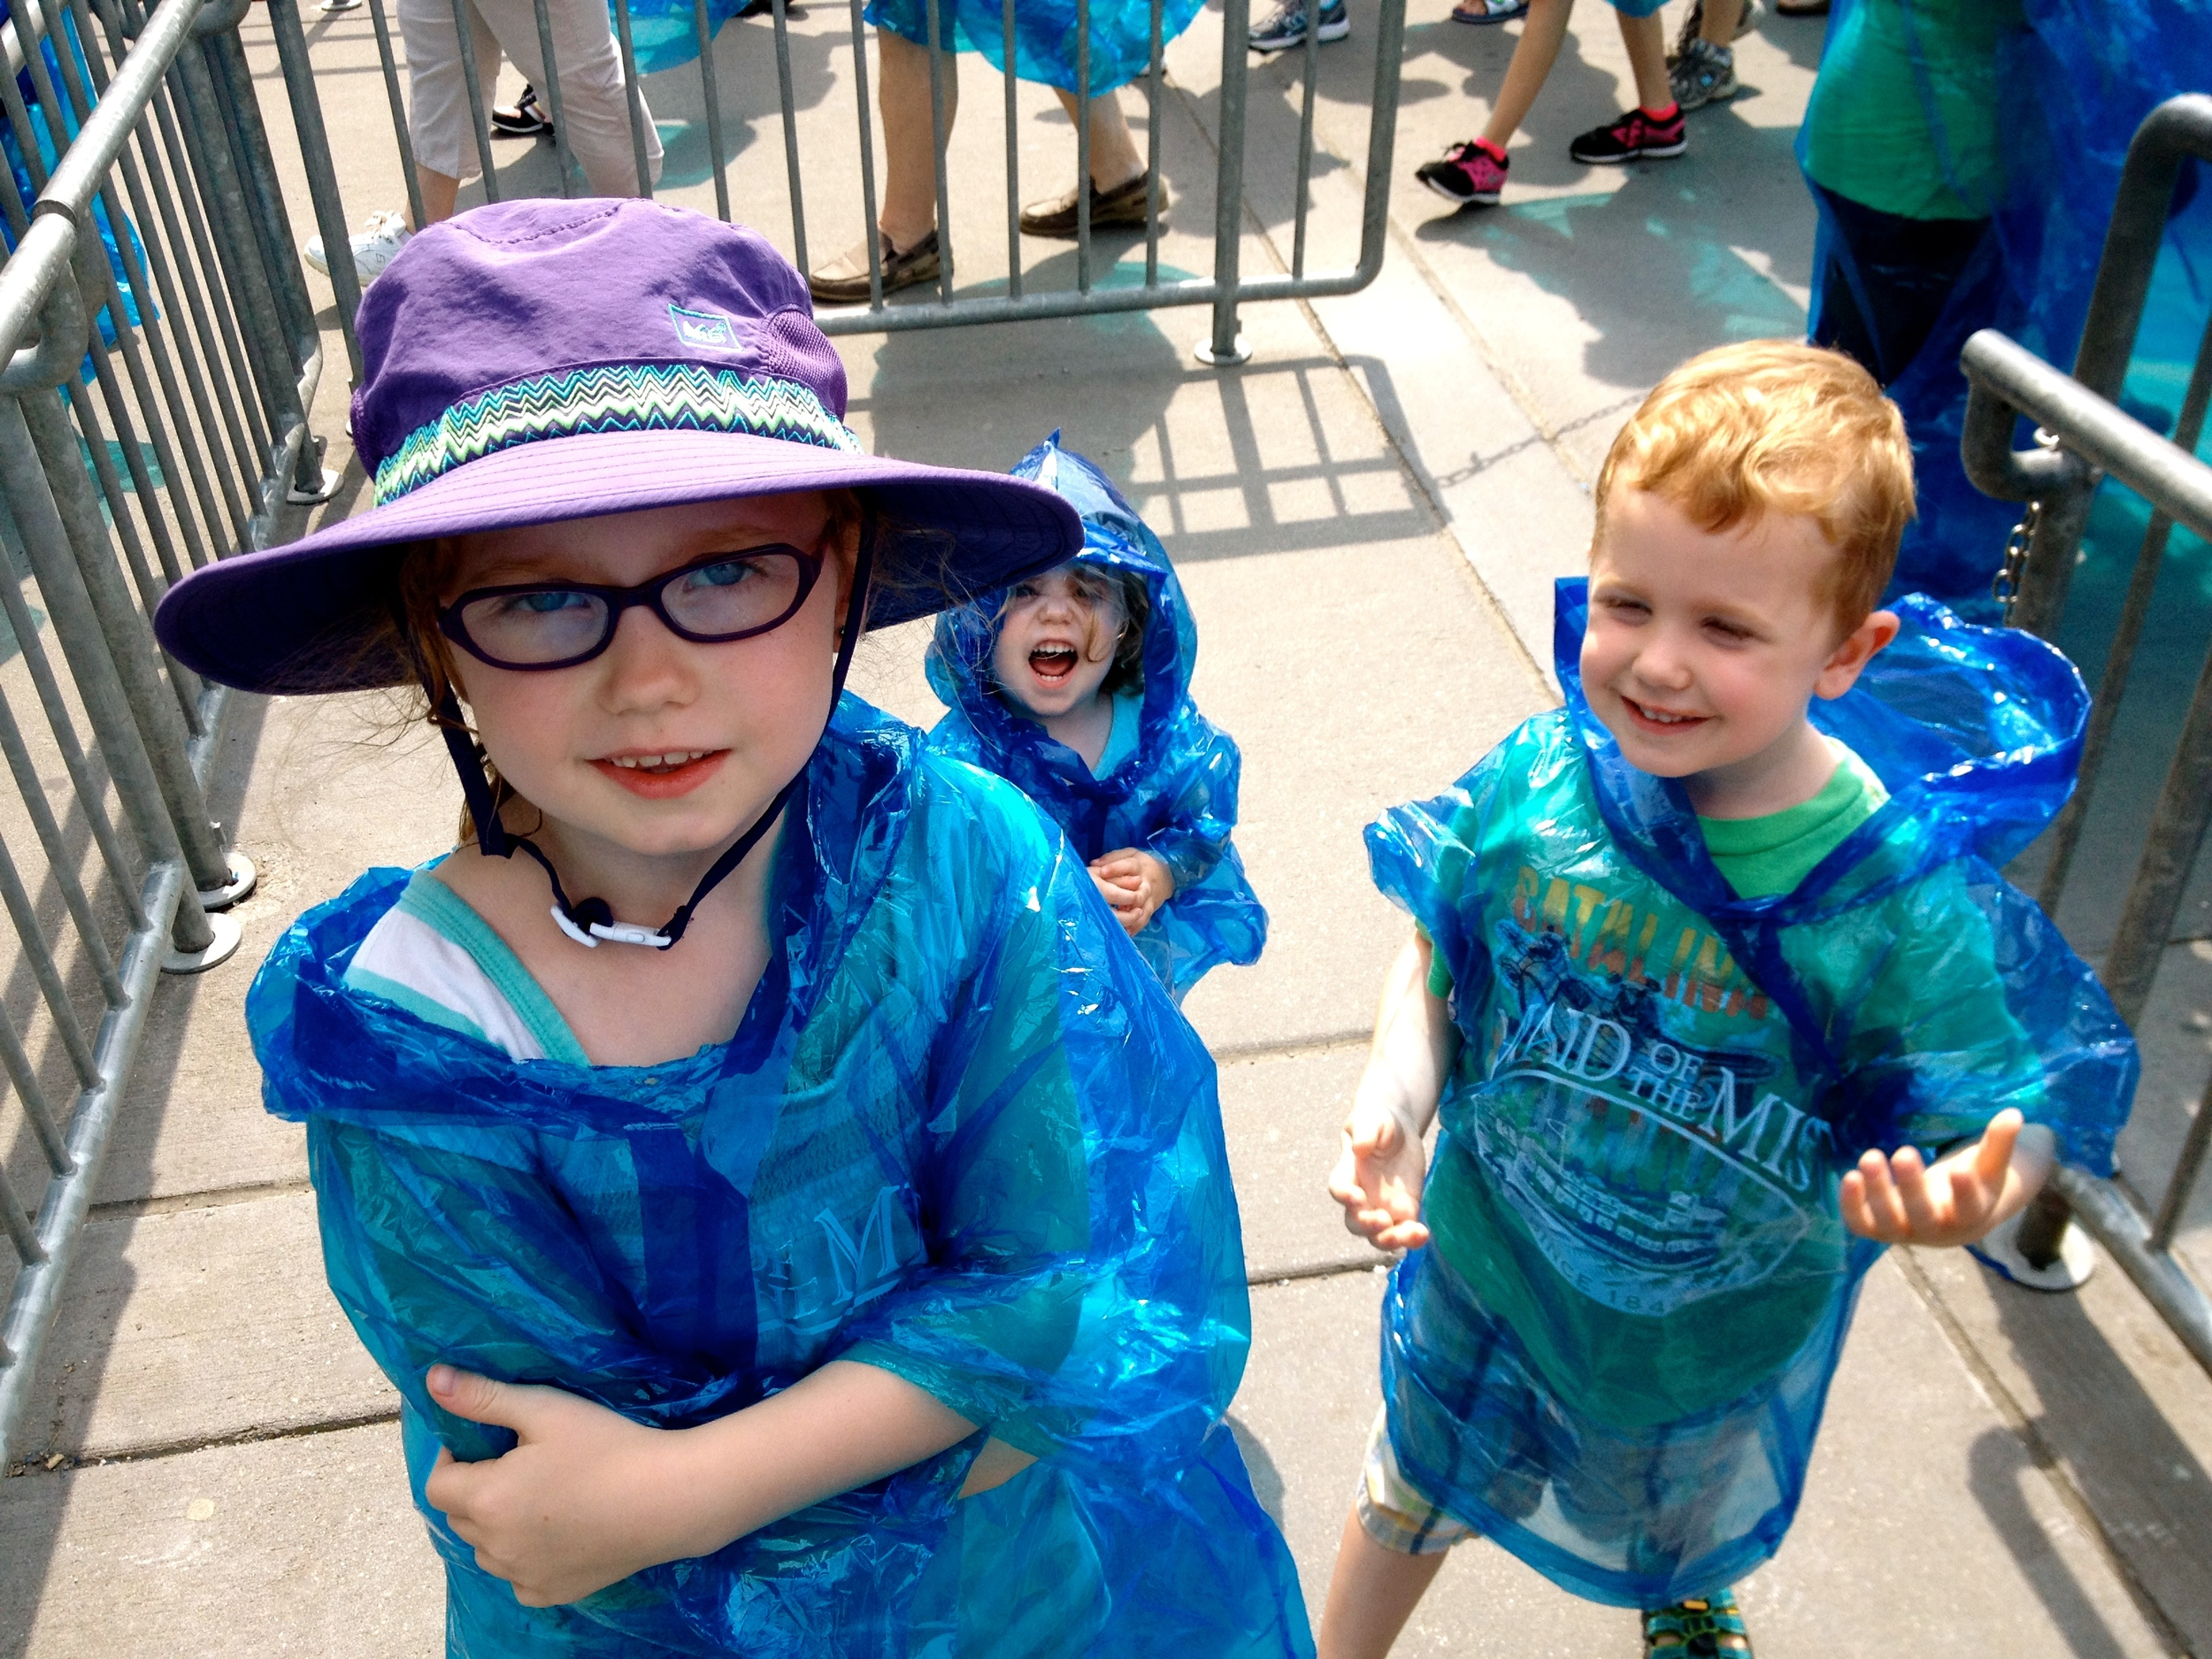 From Ohio we were driving to Boston, so to break the drive up we stopped in at Niagara Falls. Here the kiddos are waiting in line to board the Maid of the Mist.